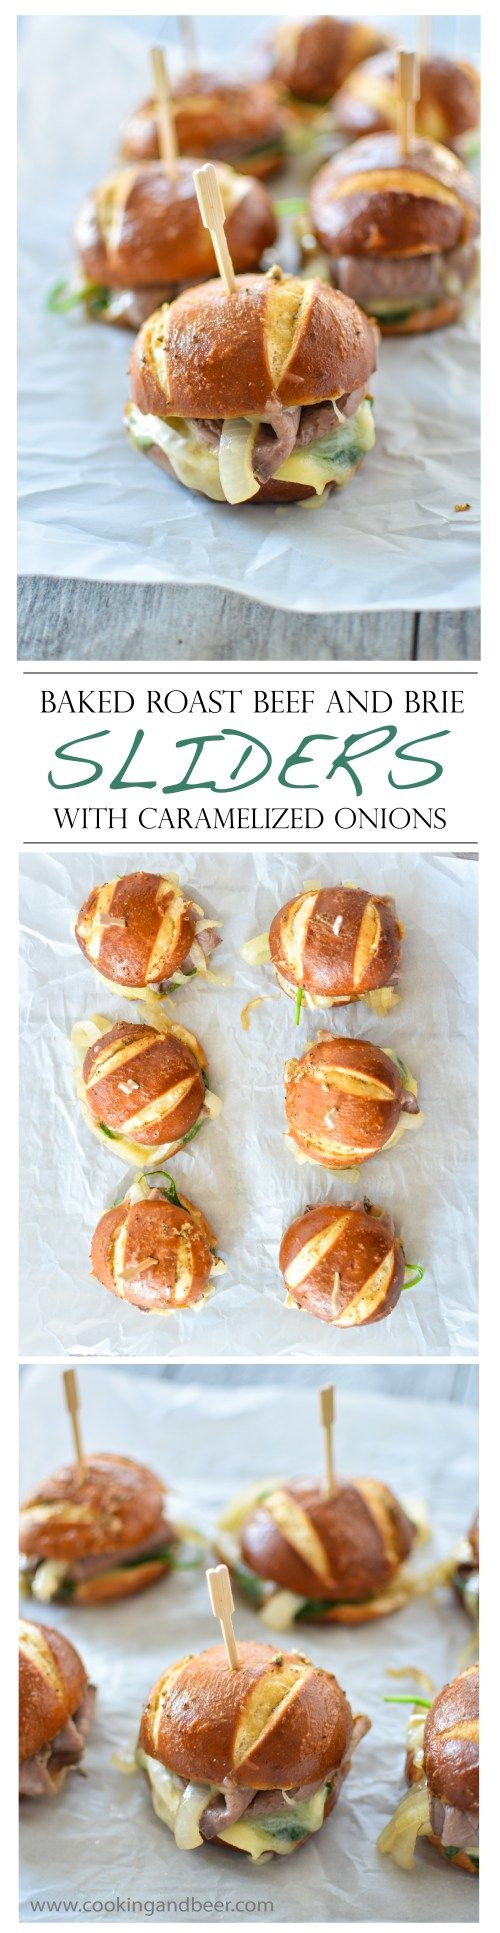 Roast Beef and Brie Sliders from Cooking and Beer as part of the Super Bowl Party ideas - Friday Five on Feed Your Soul Too